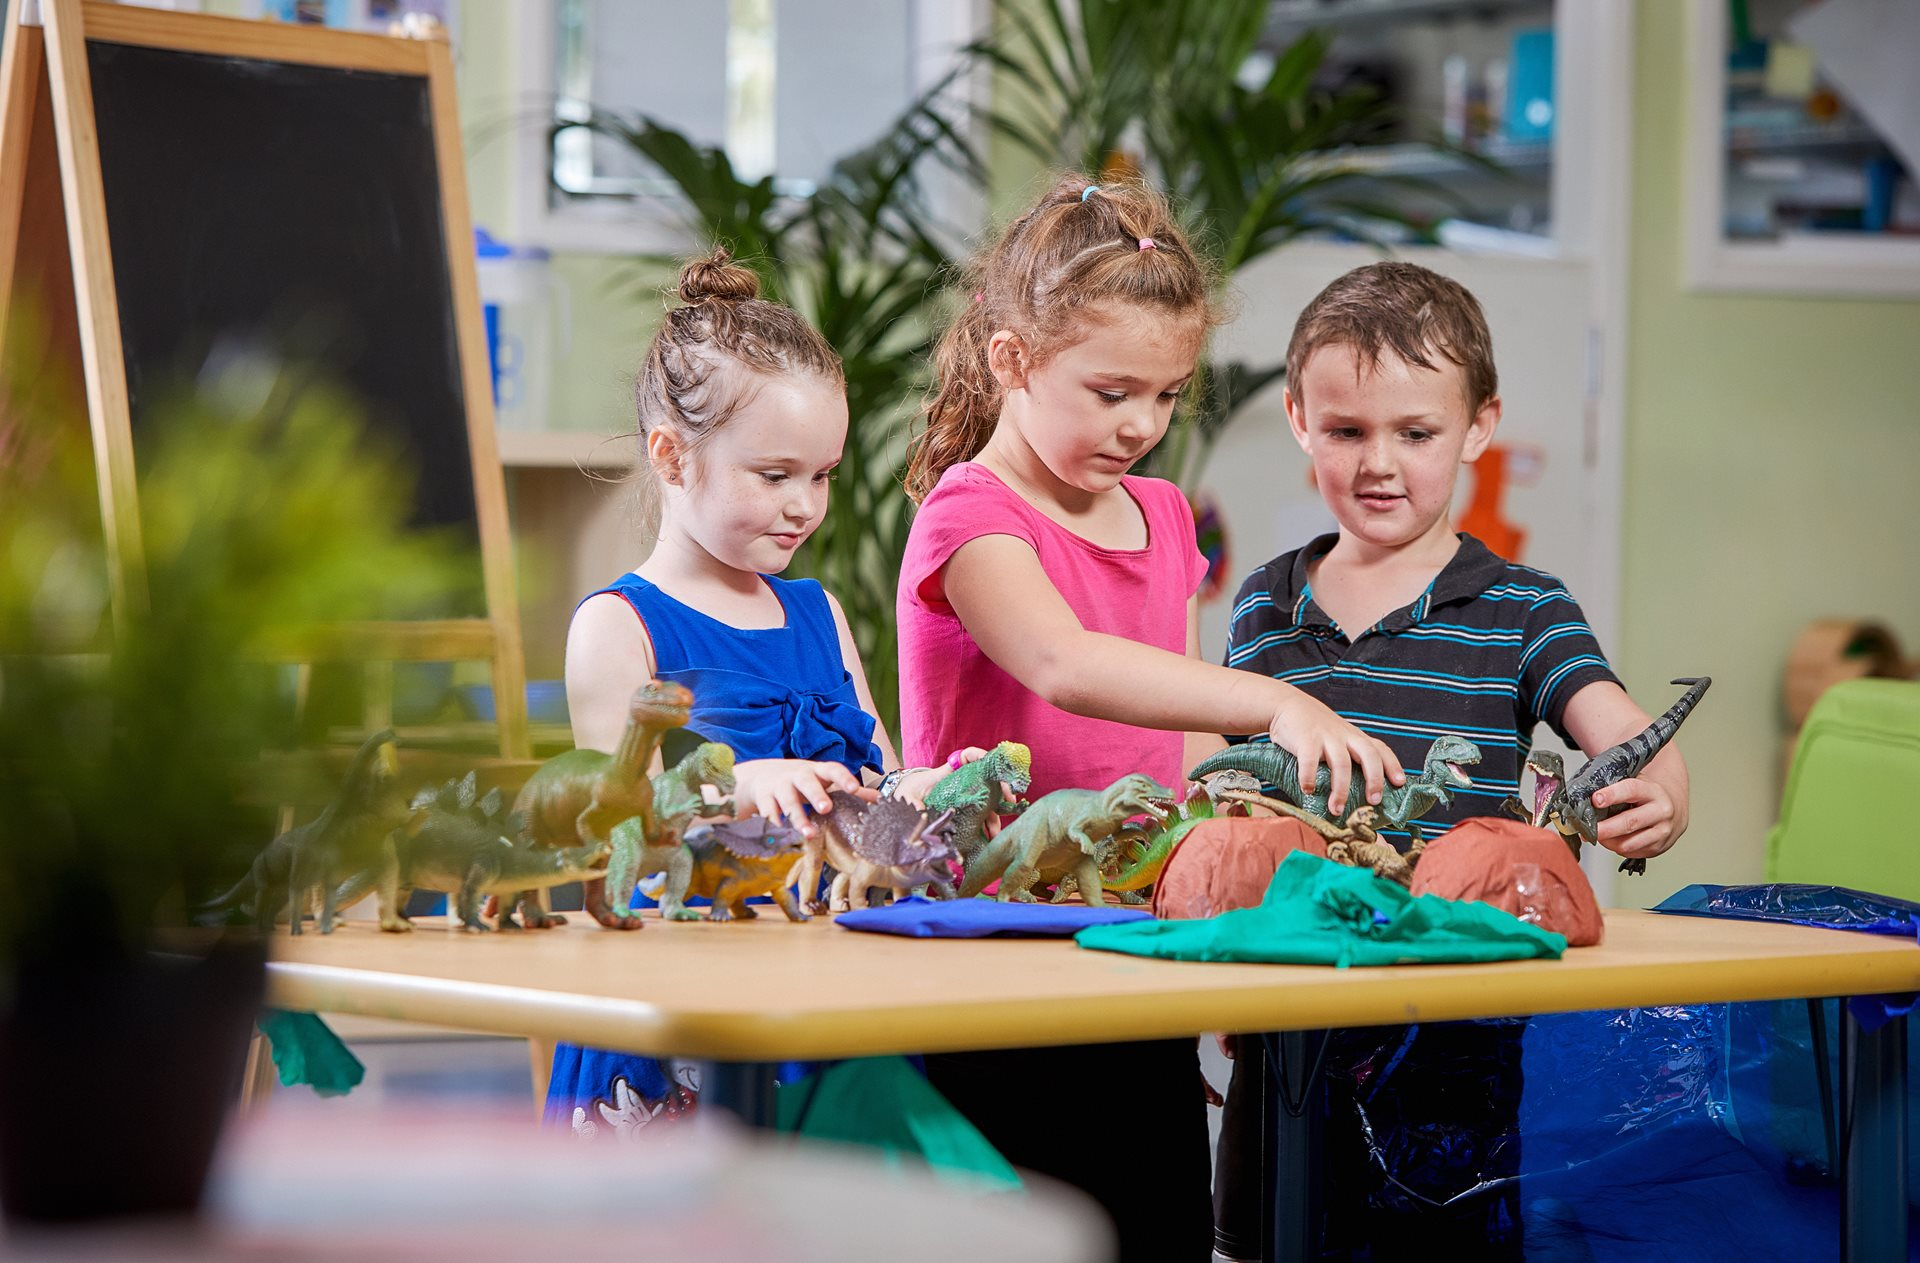 Quality childcare in Ipswich inspiring lifelong learning